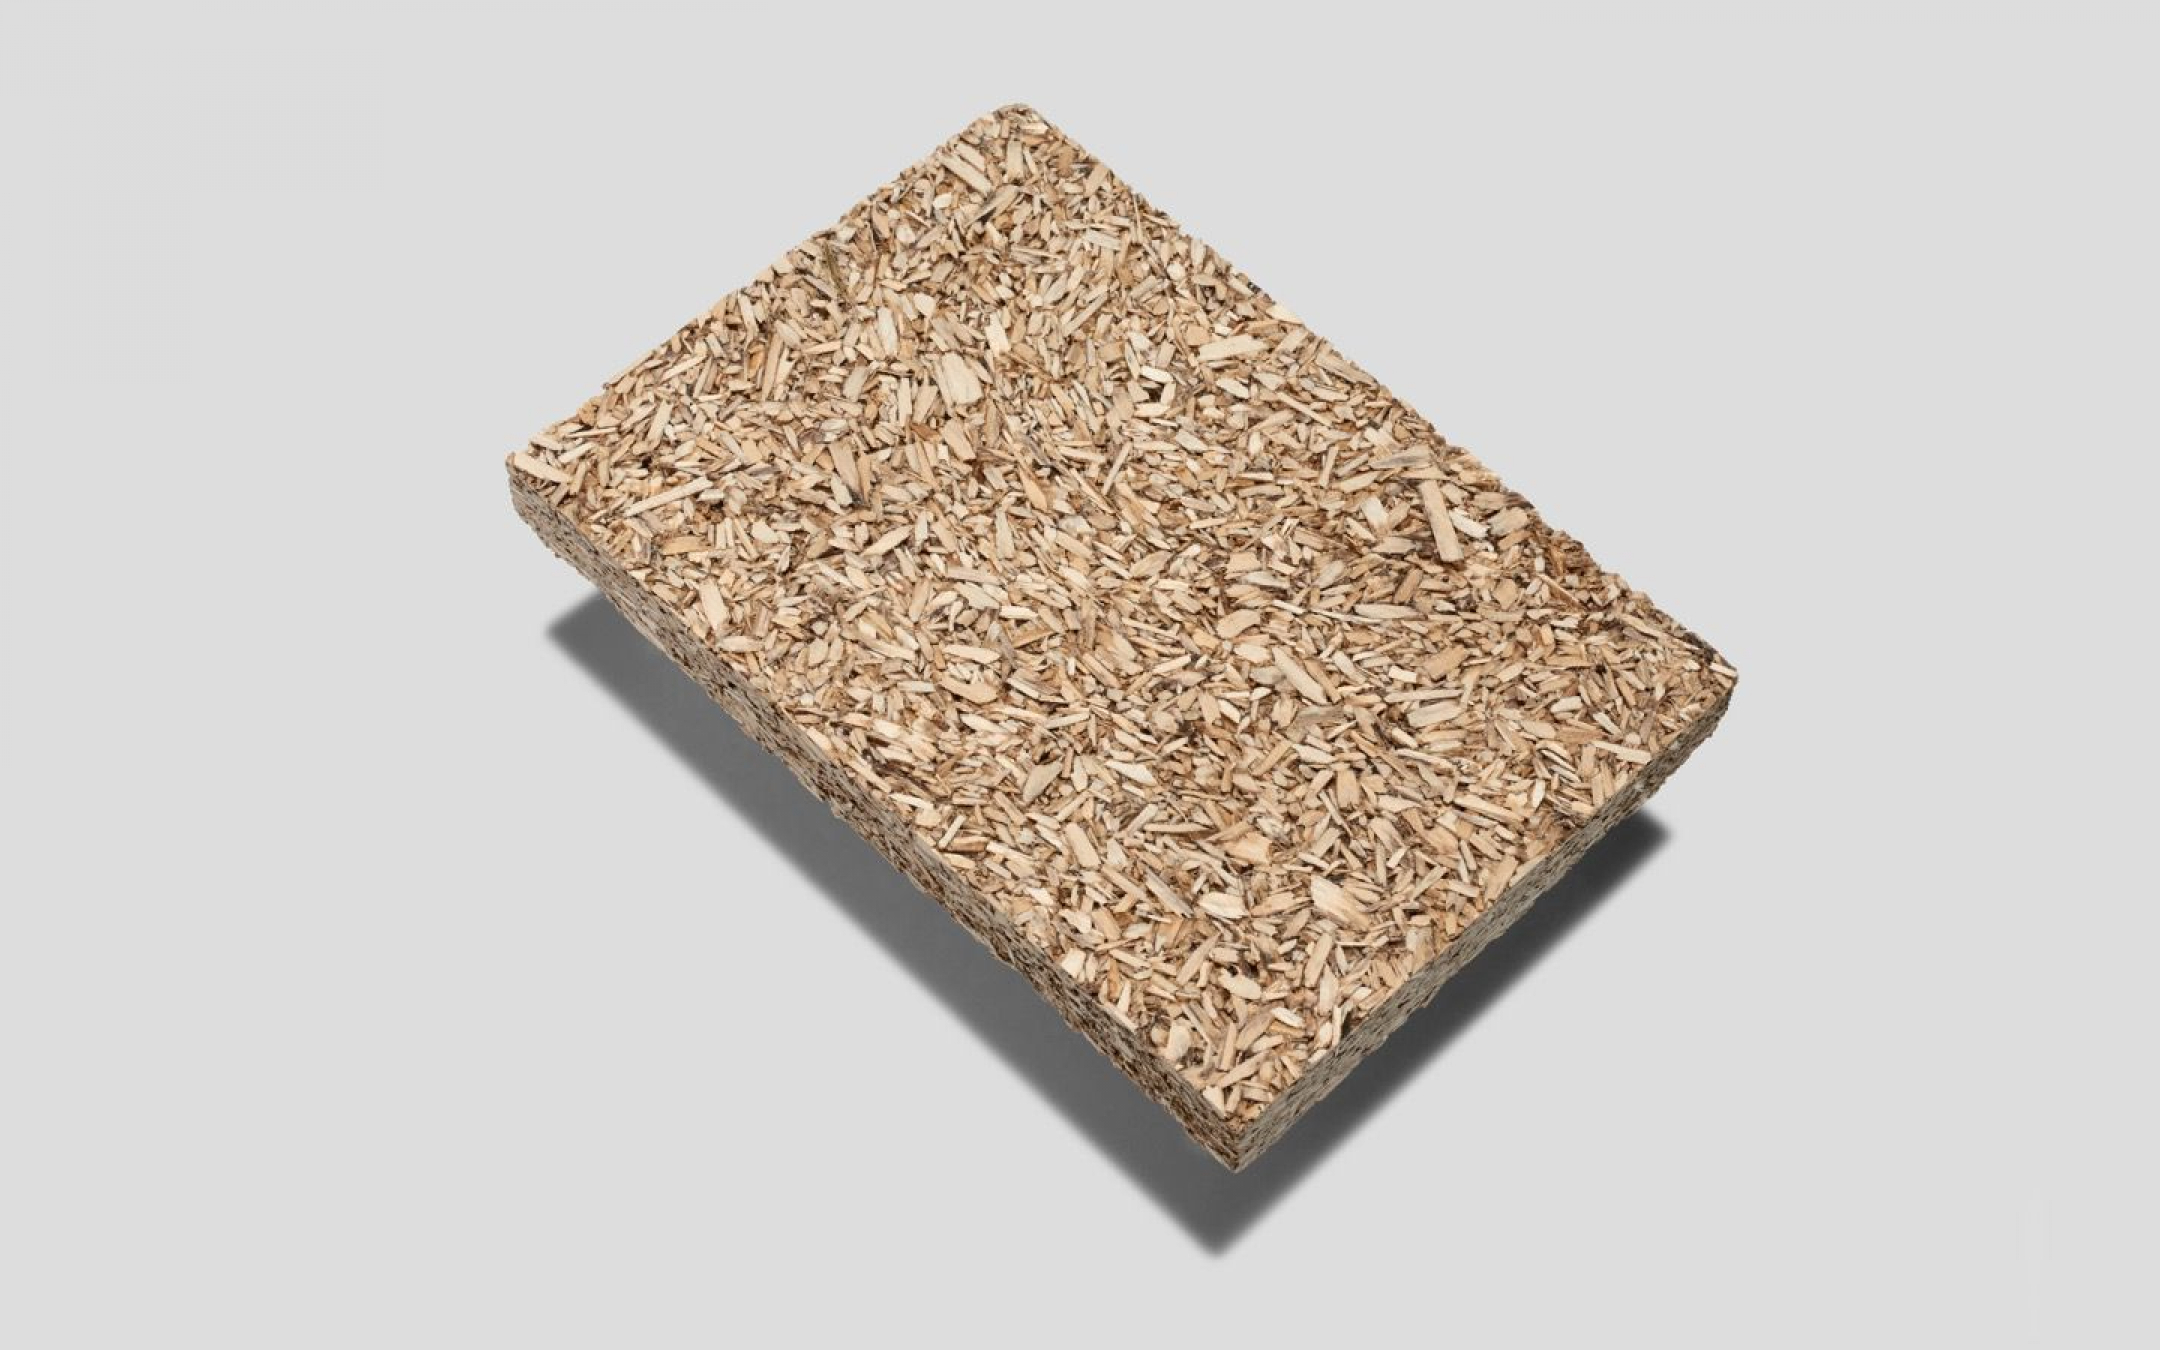 Compostboard